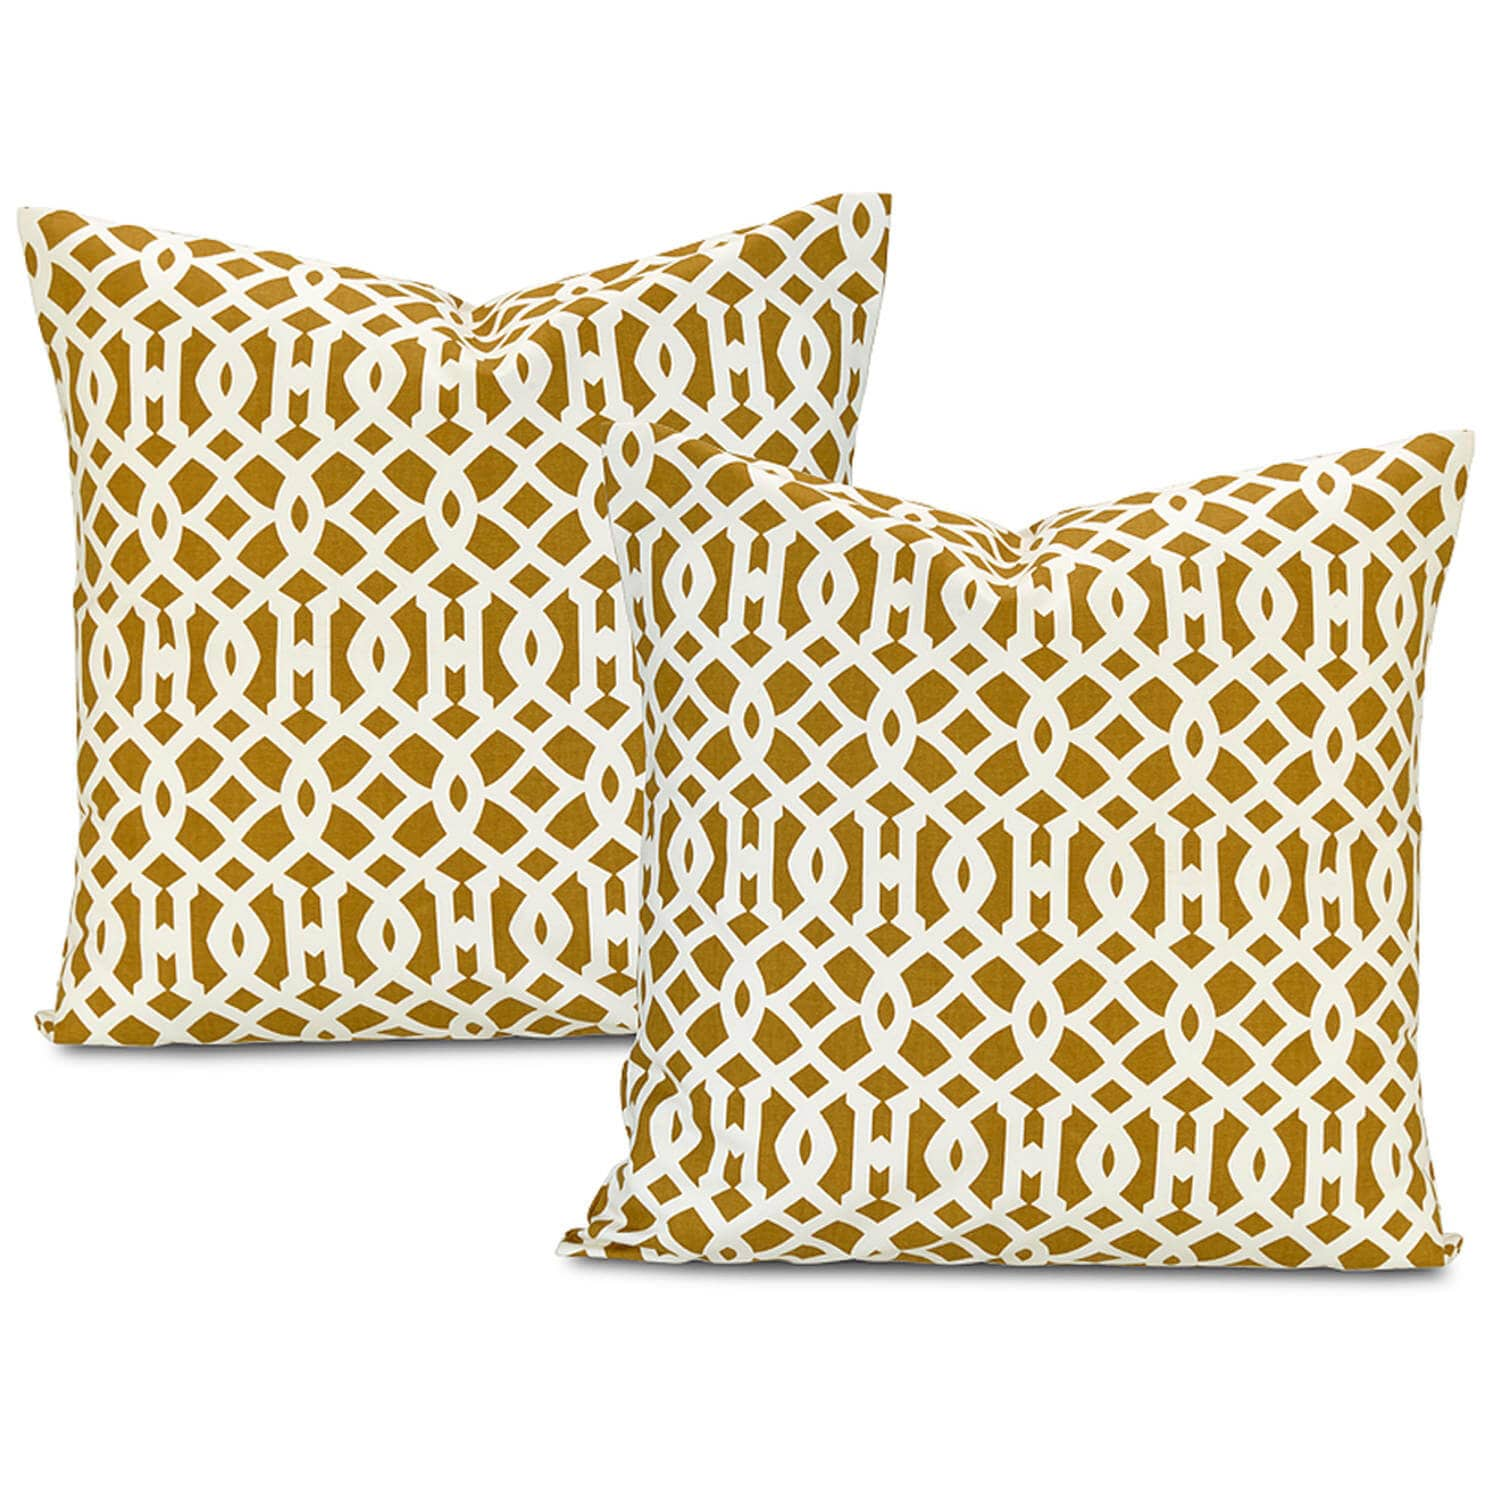 Nairobi Desert Printed Cotton Cushion Covers -  Pair